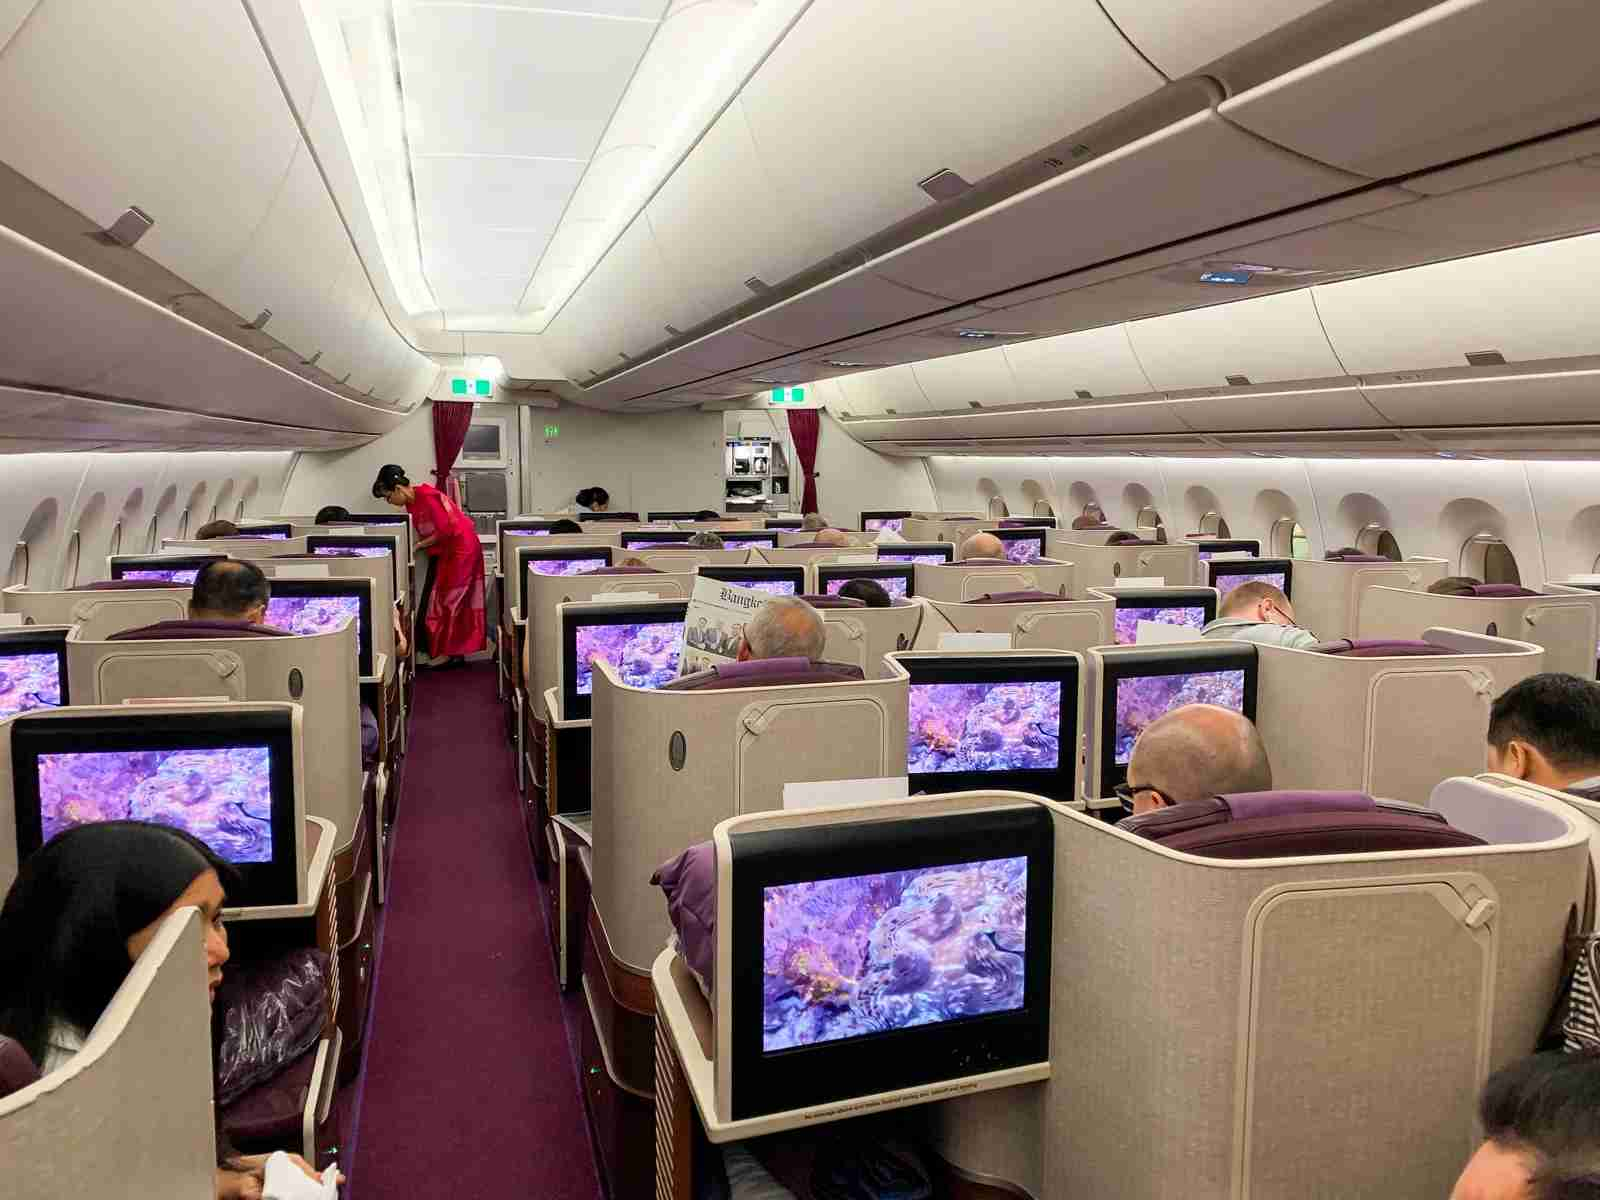 Thai Airways A350 business class. (Photo by Javier Rodriguez/The Points Guy)